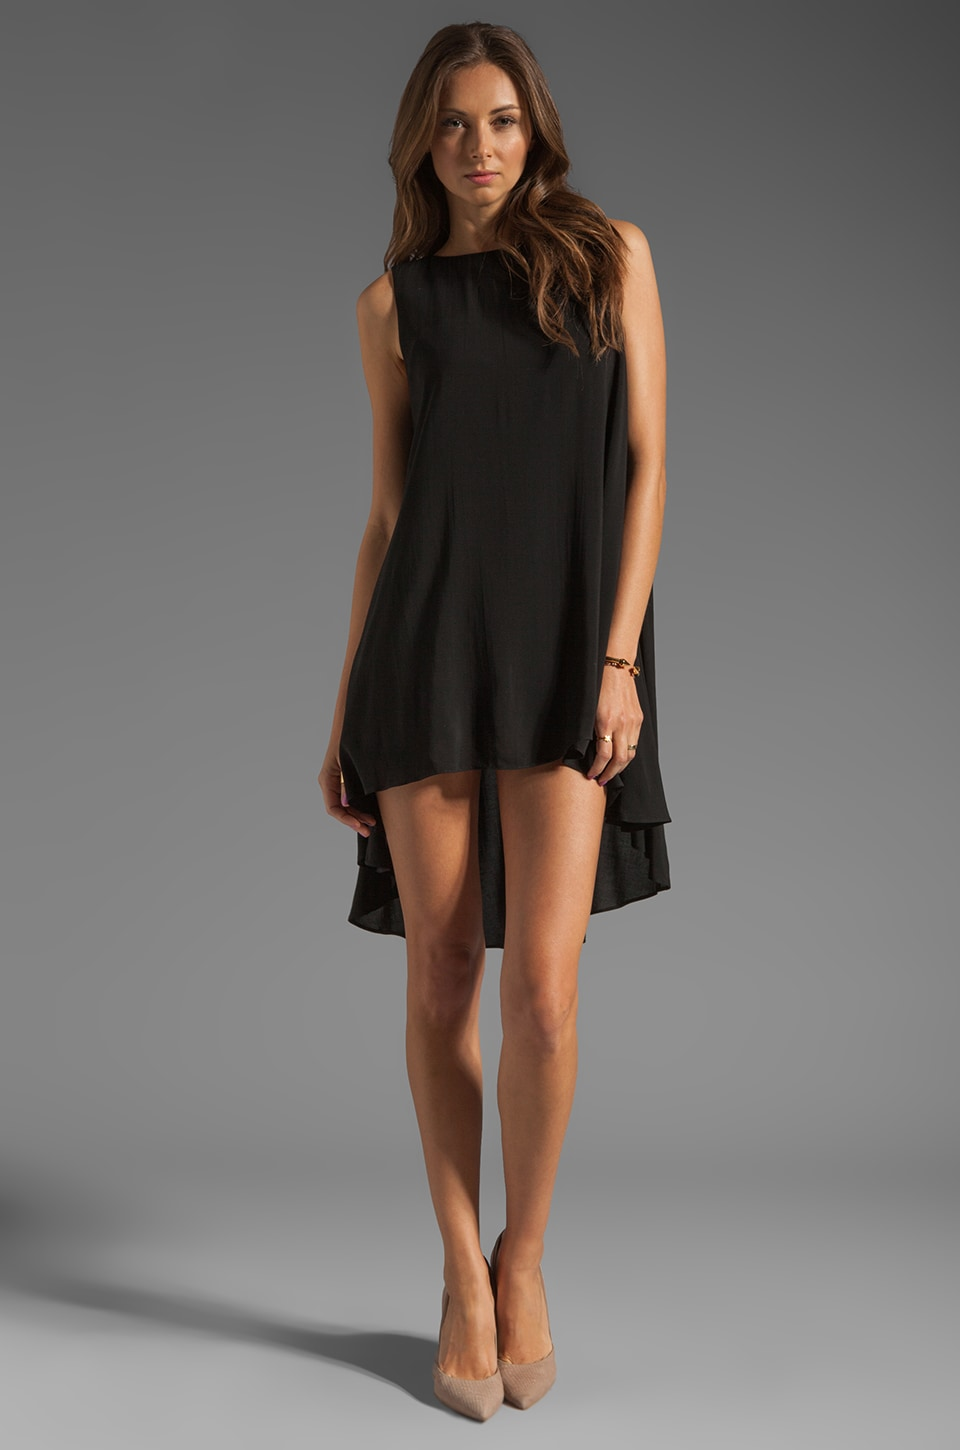 JARLO Leah Dress in Black